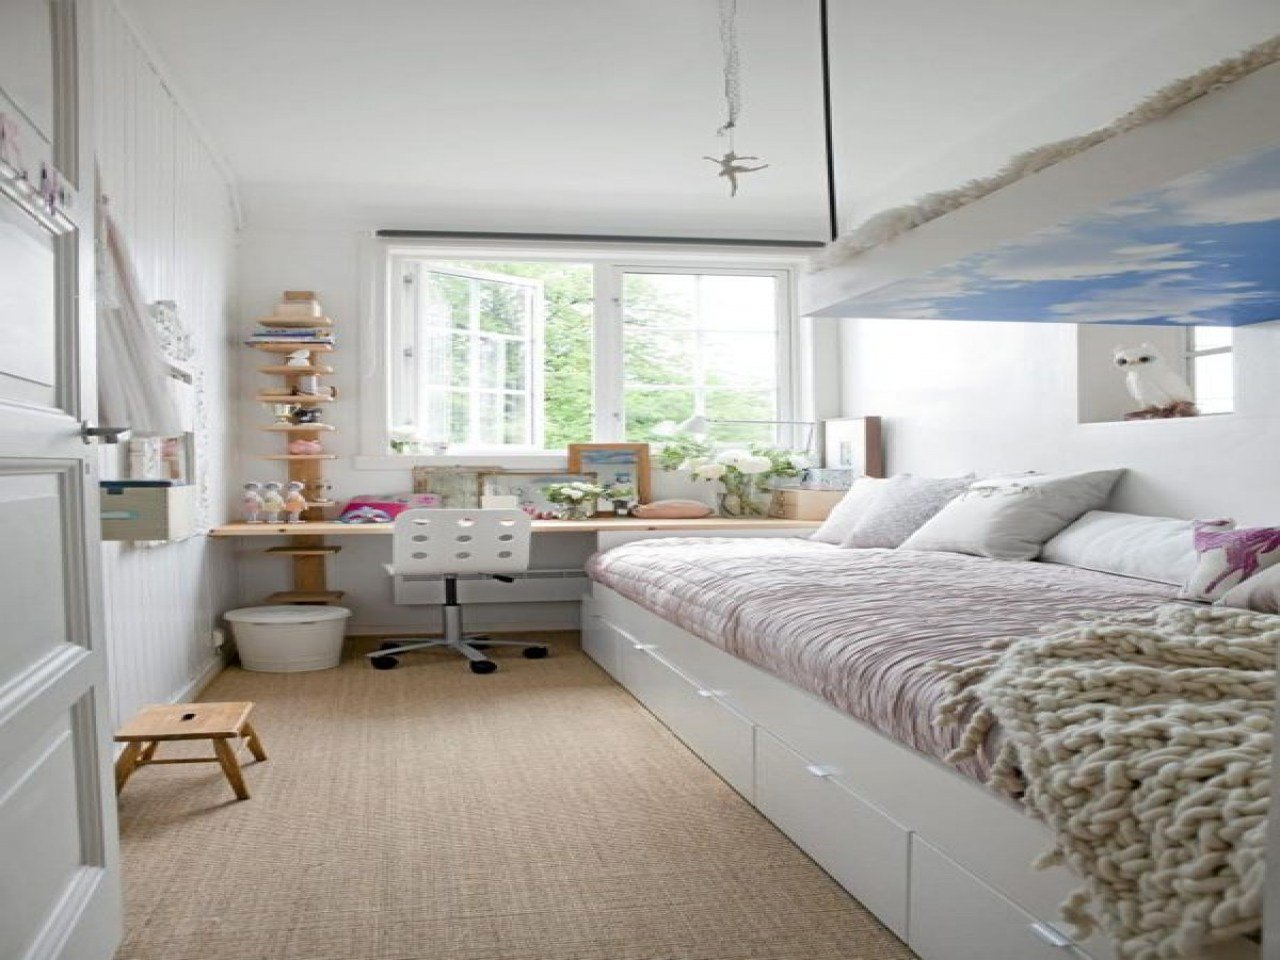 Best Small Space Architecture Decorating A Narrow Room Long With Pictures